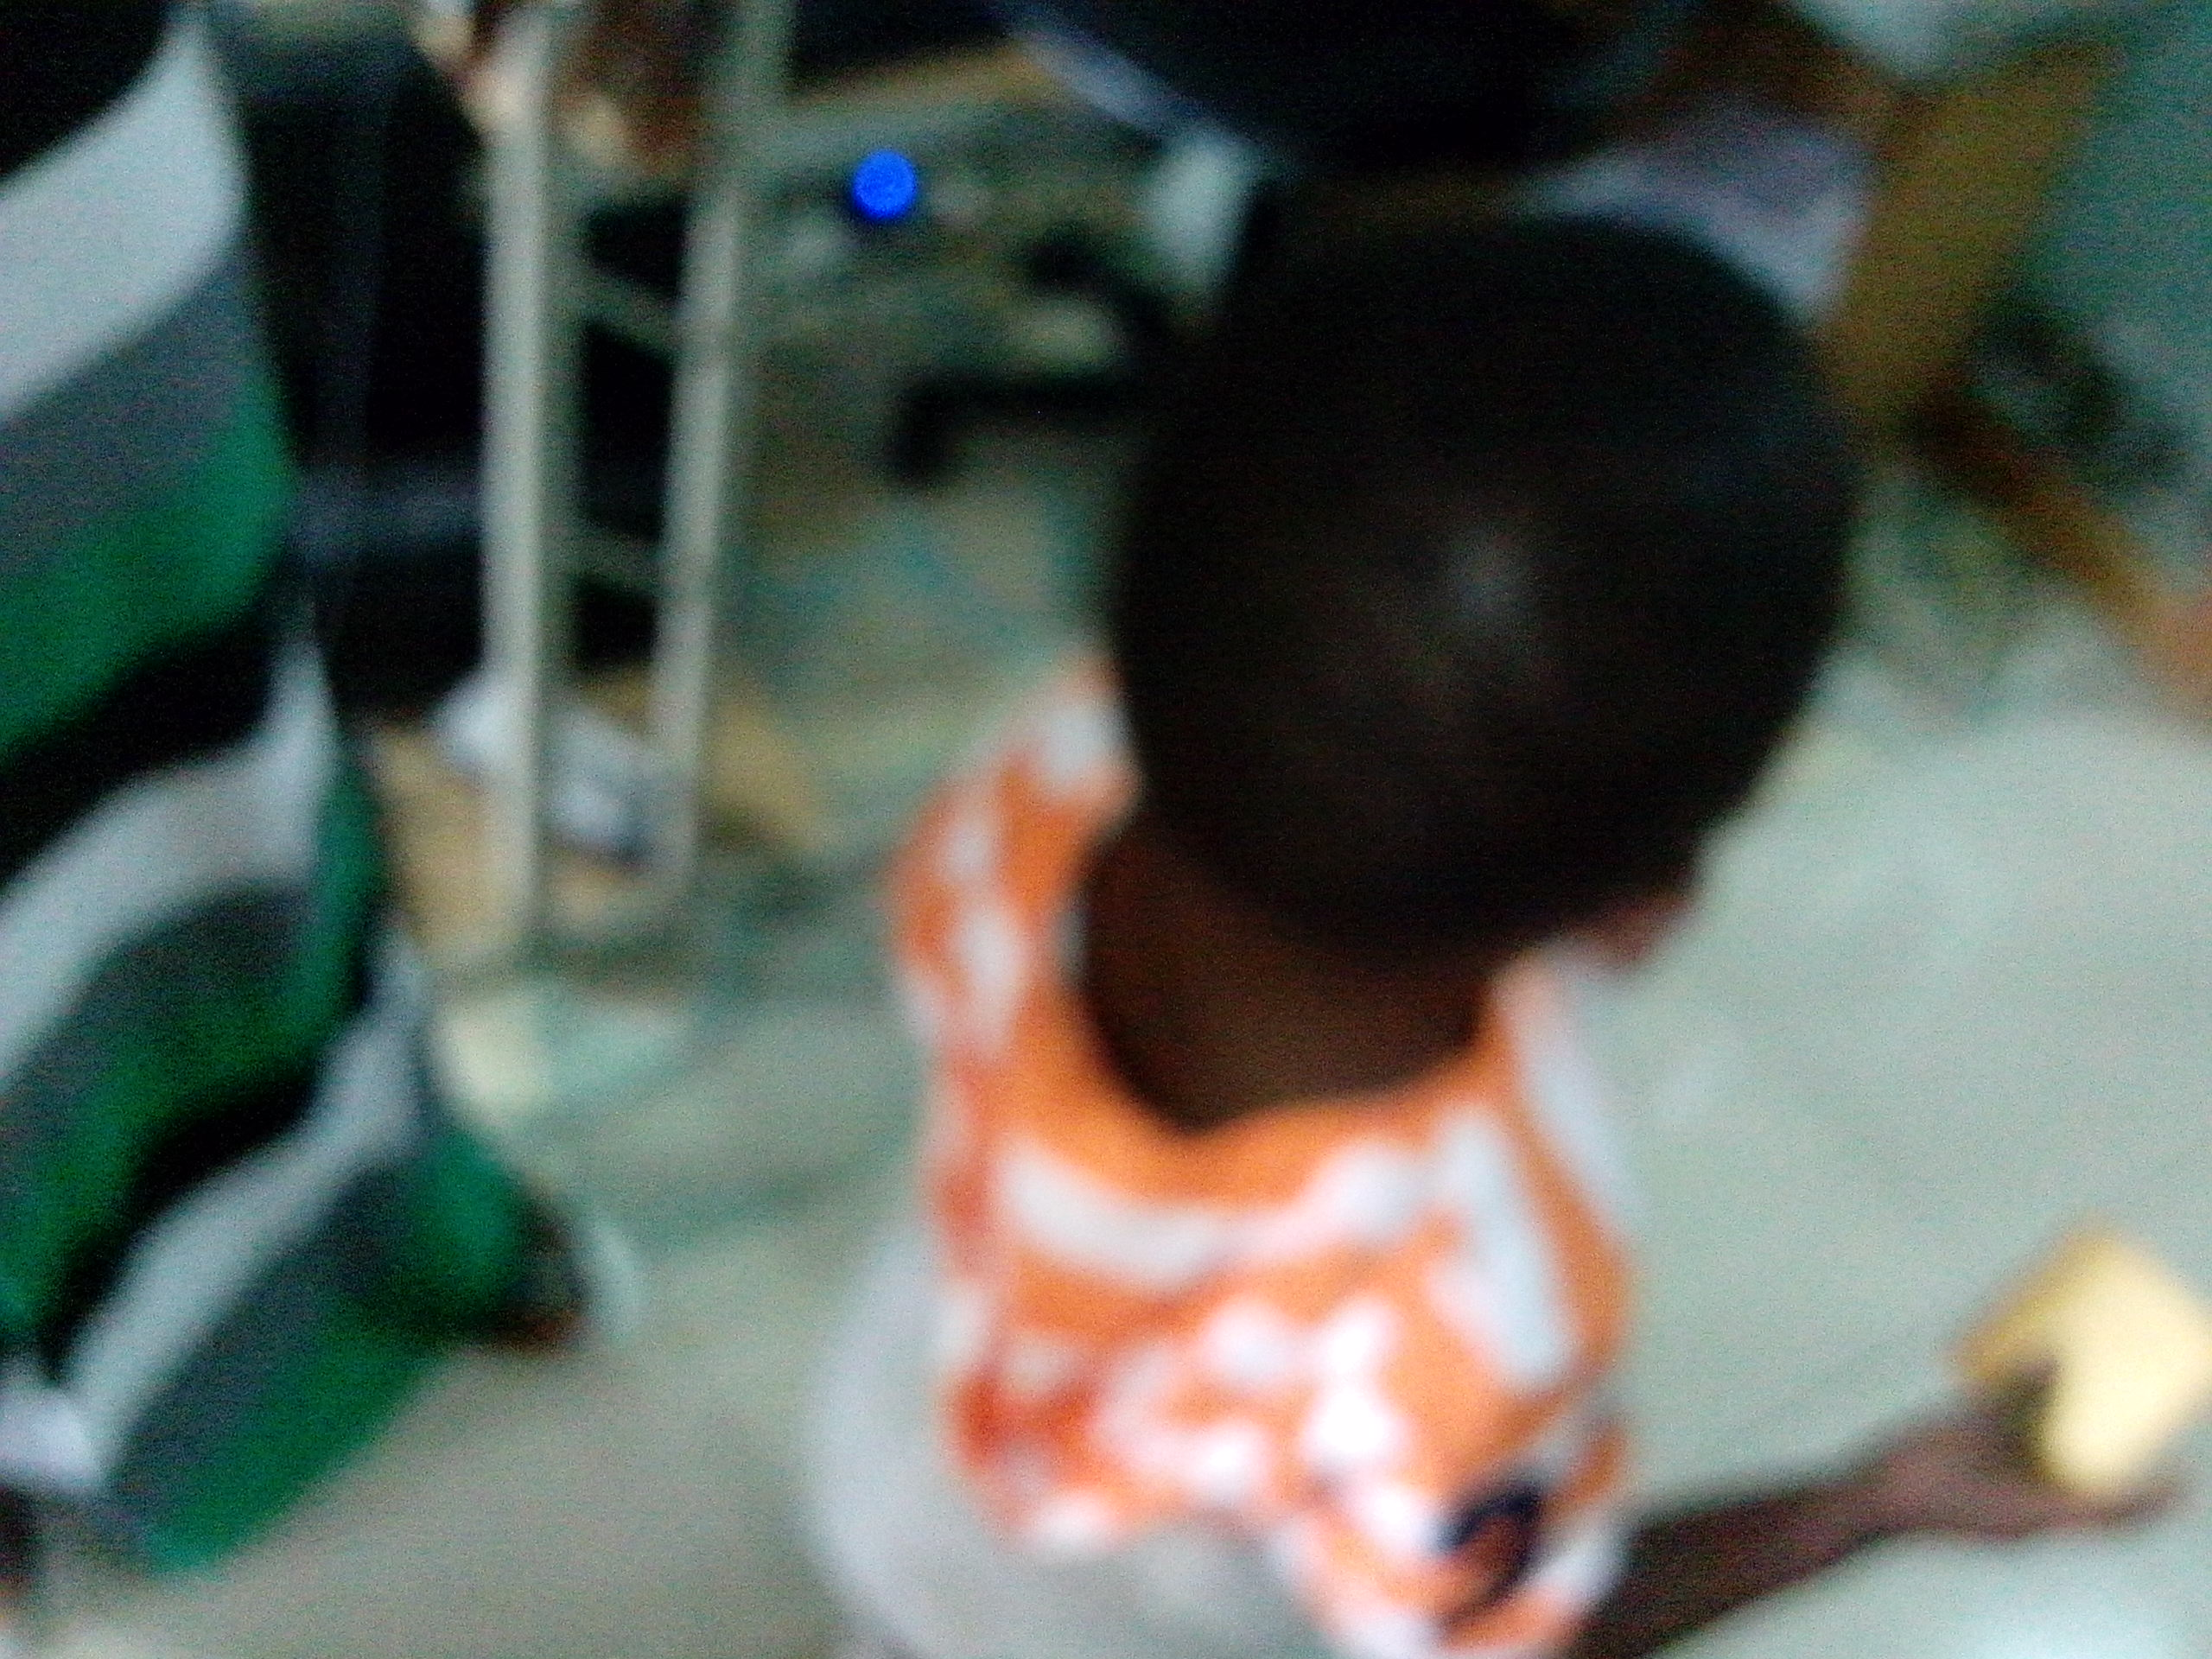 Blurred picture of the defiled toddler